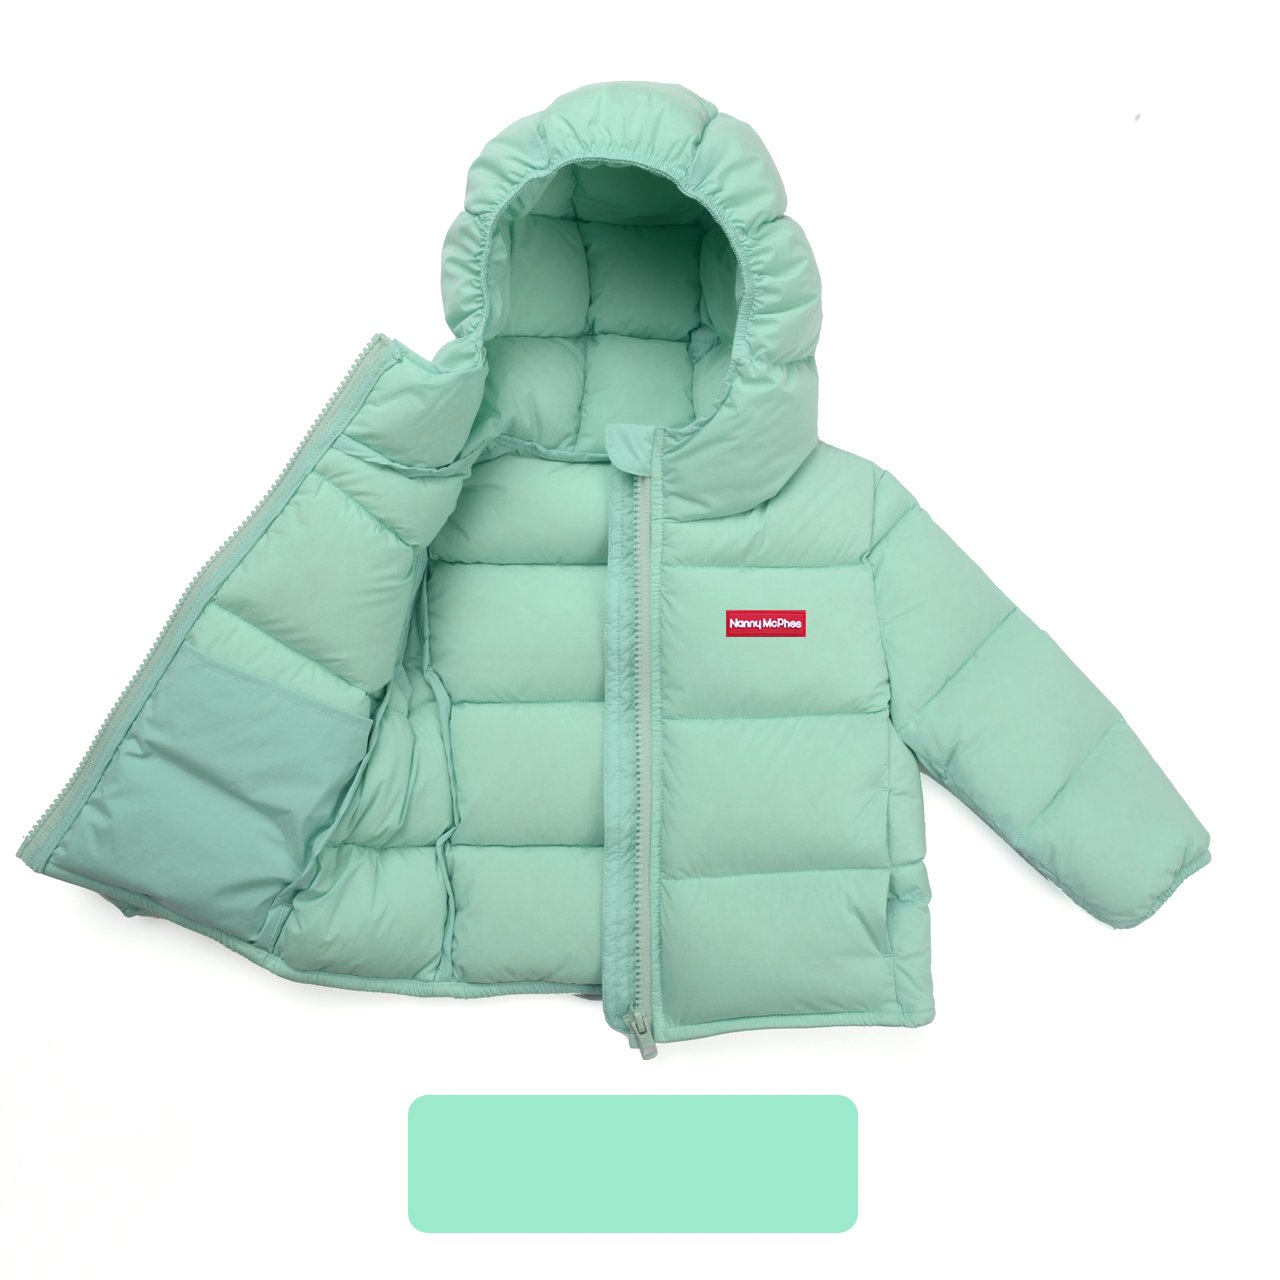 Nanny McPhee Kids Down Coat Unisex Baby Hooded Lightweight Down Puffer Jacket Outwear (More Styles Available)